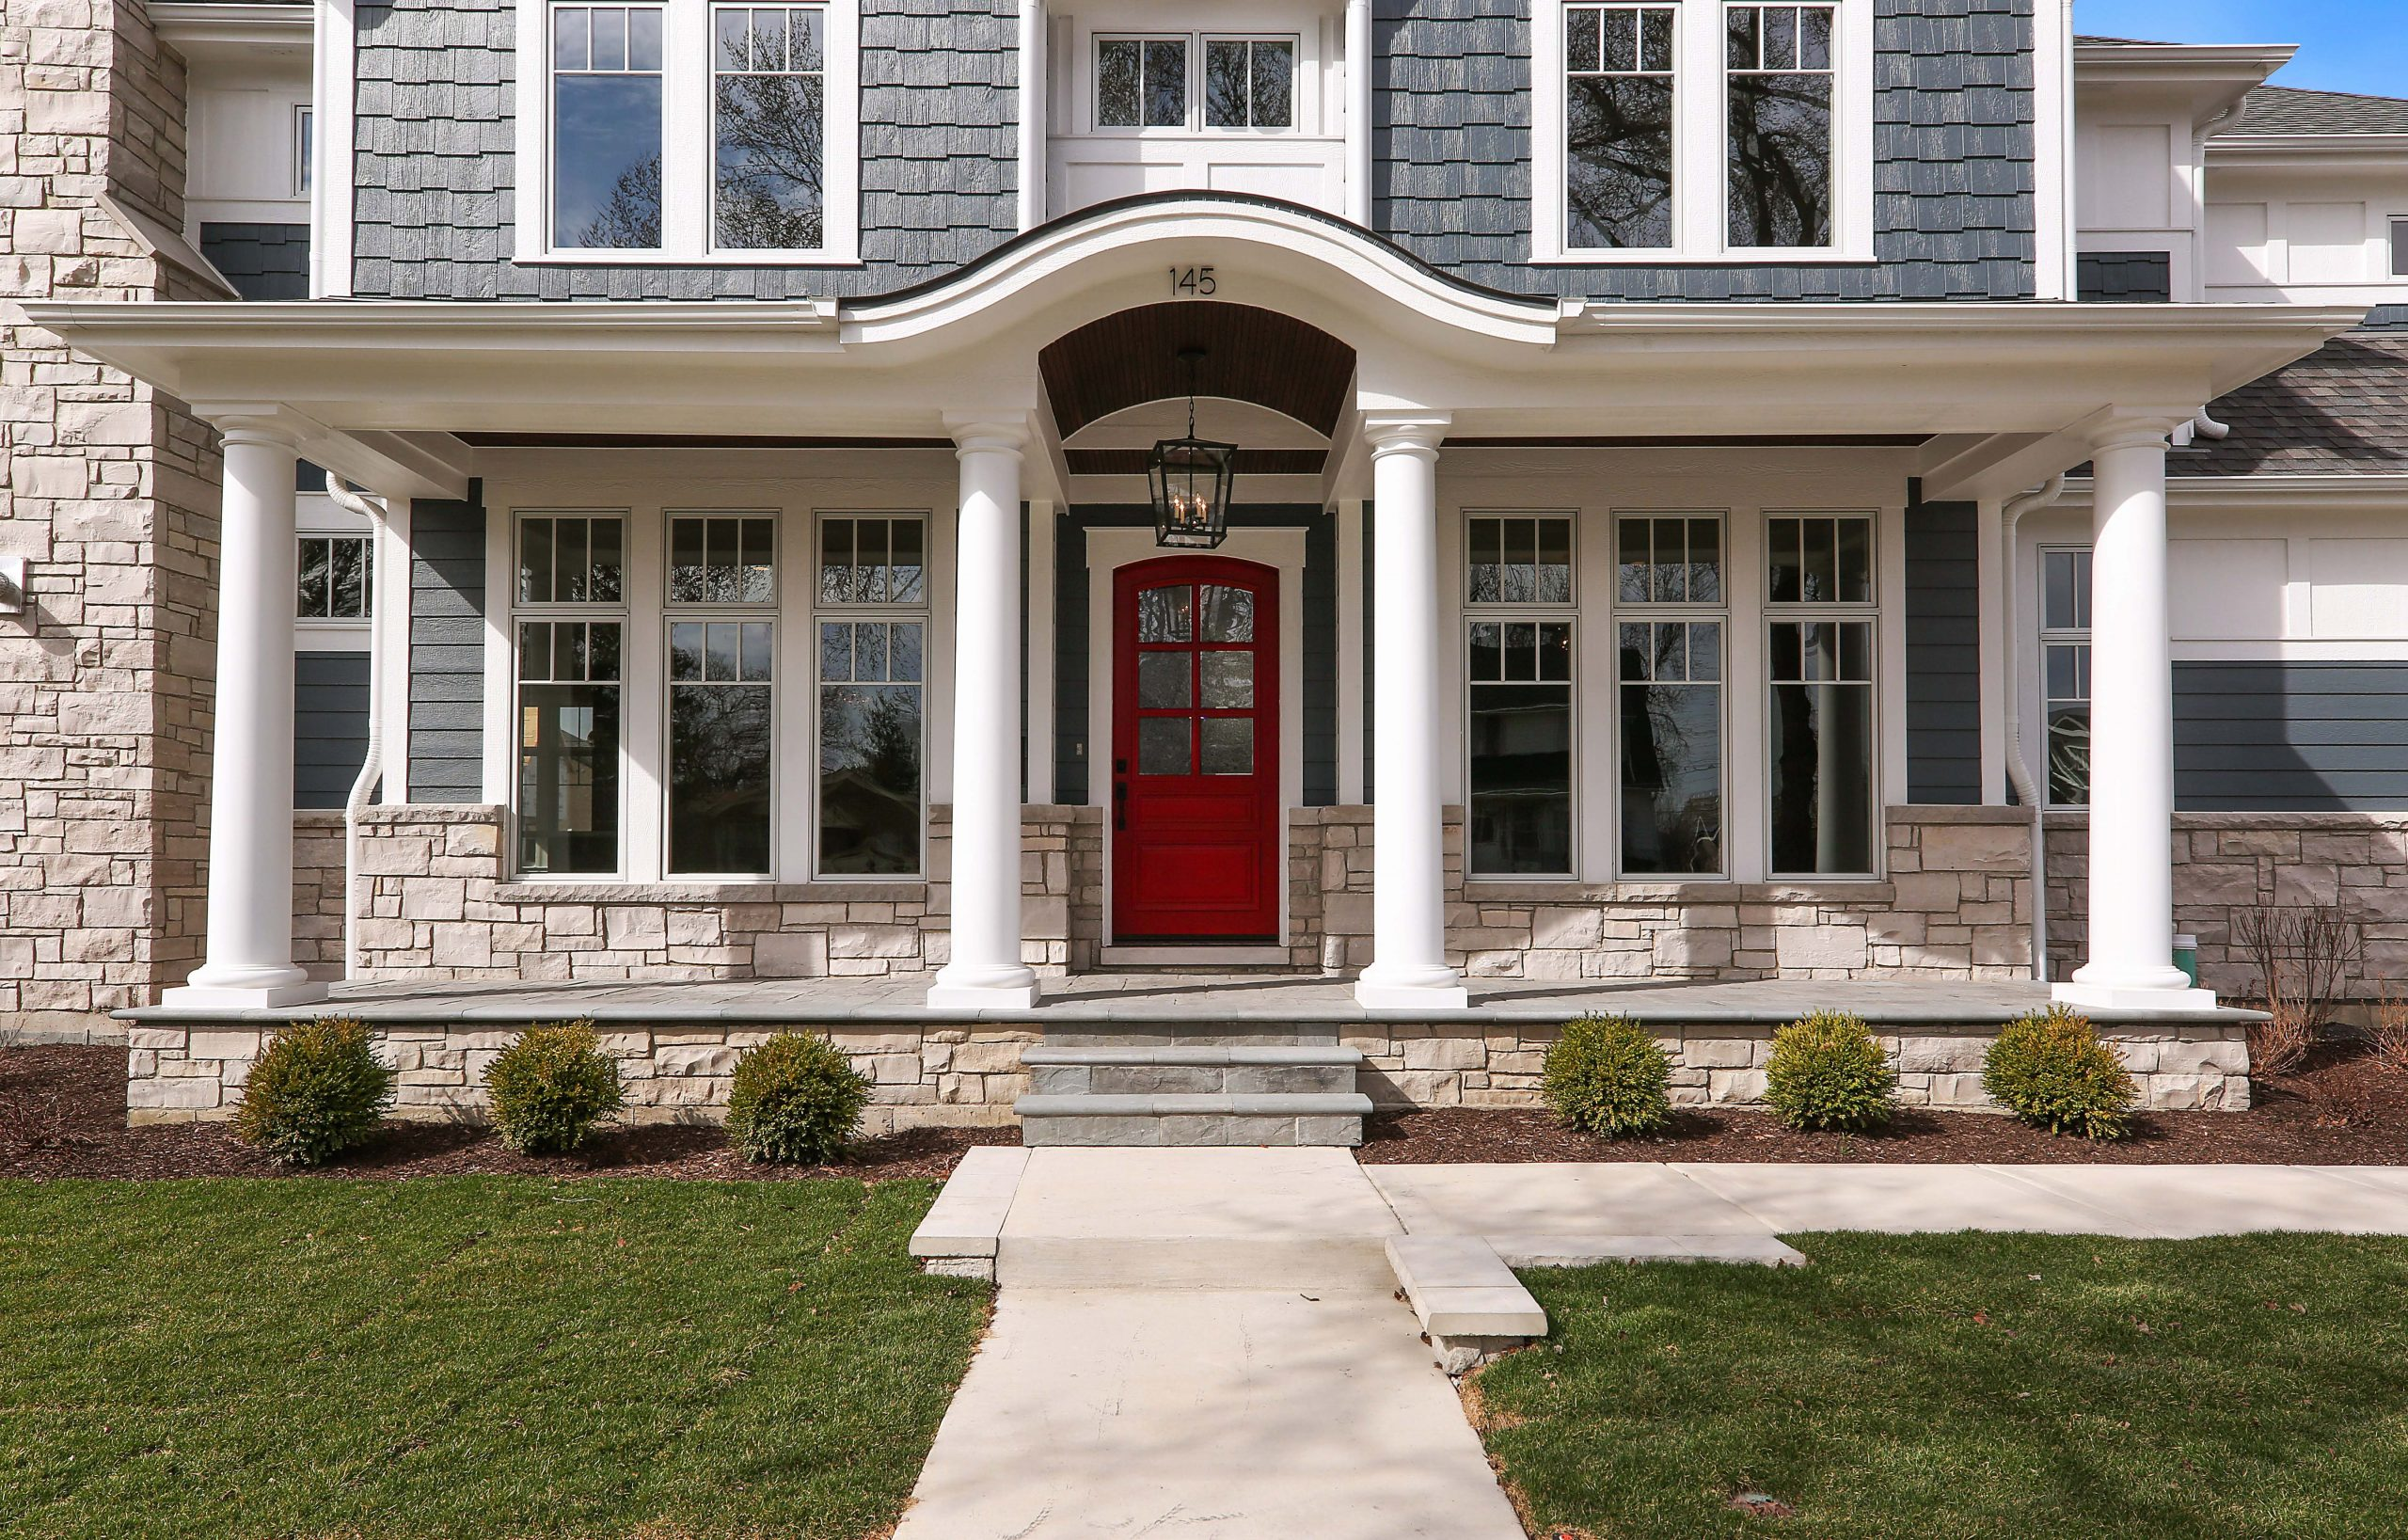 blue vinyl siding color with white trim, wall paneling and round columns. Red front door. Dark brown wood porch soffit. Light brown stone veneer. Concrete walkways.